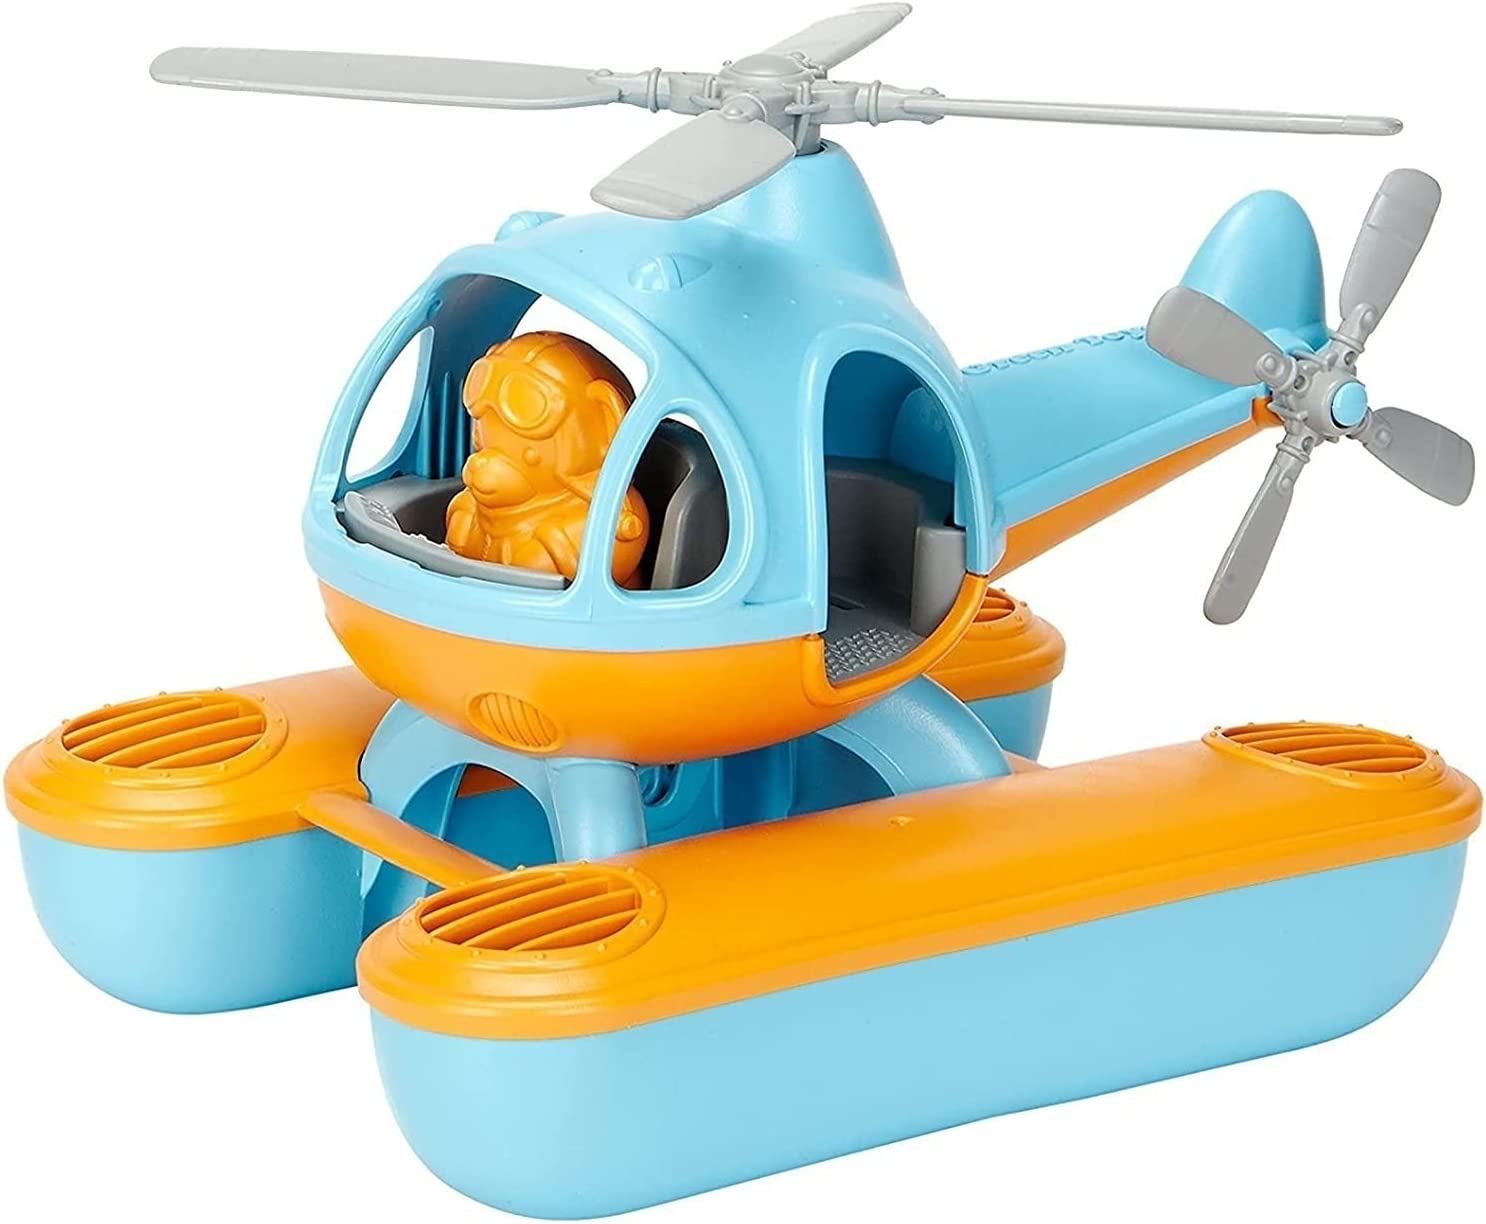 TONG Kids Water Toys Children's Wate Bargain sale Playing Fixed price for sale in Swimming